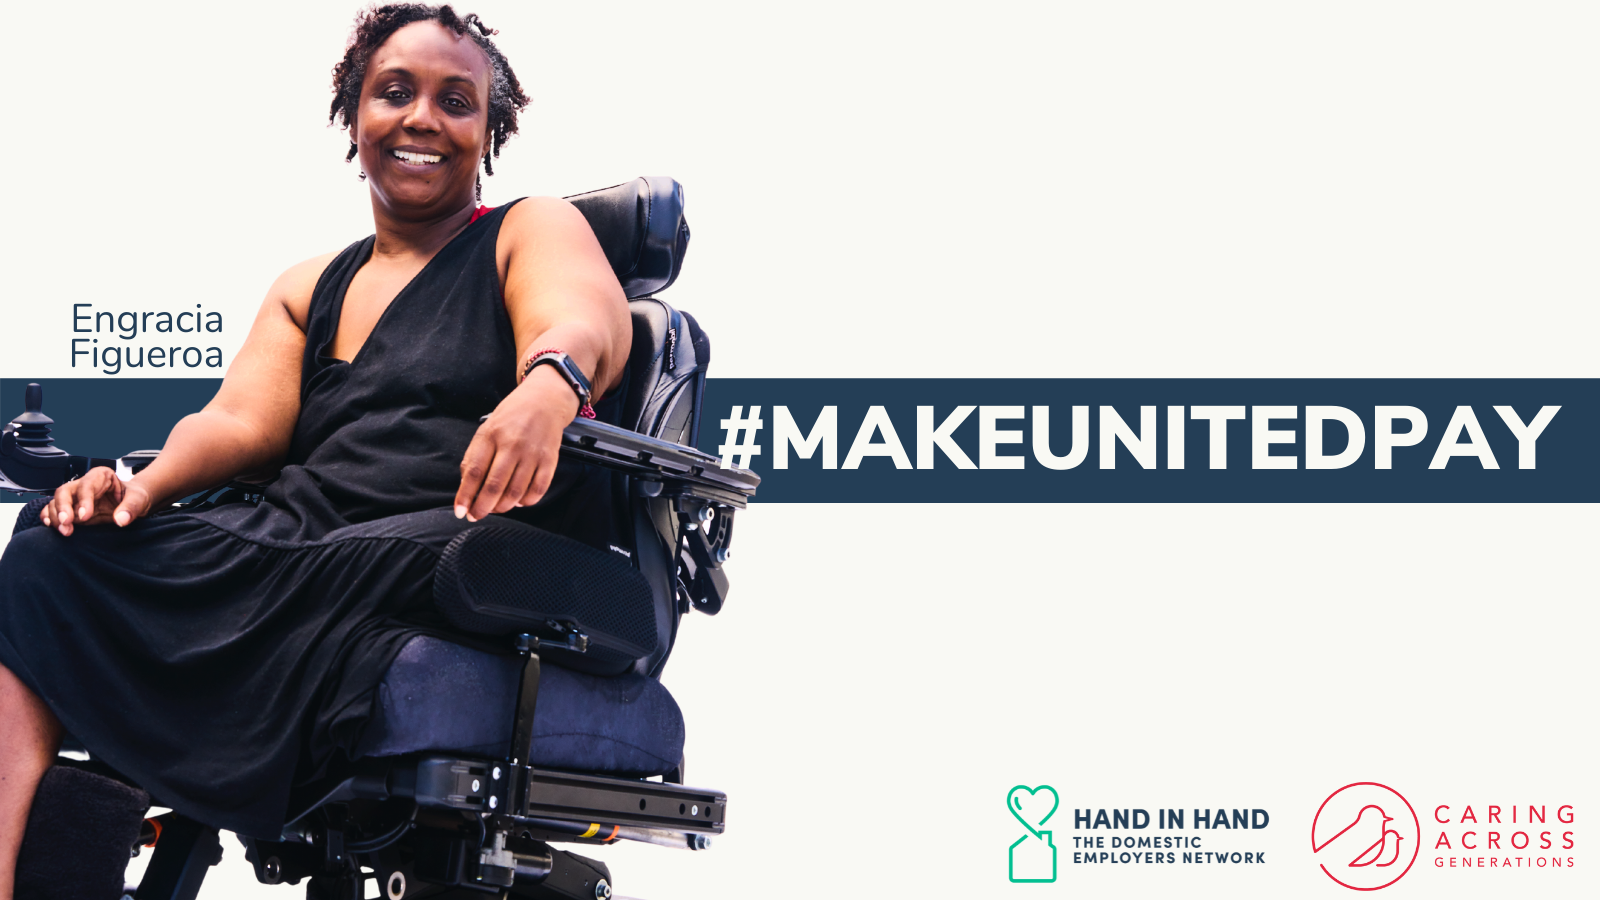 """A photo of Engracia Figueroa, a Black woman in a wheelchair, with text net to her that says """"#MAKEUNITEDPAY"""""""